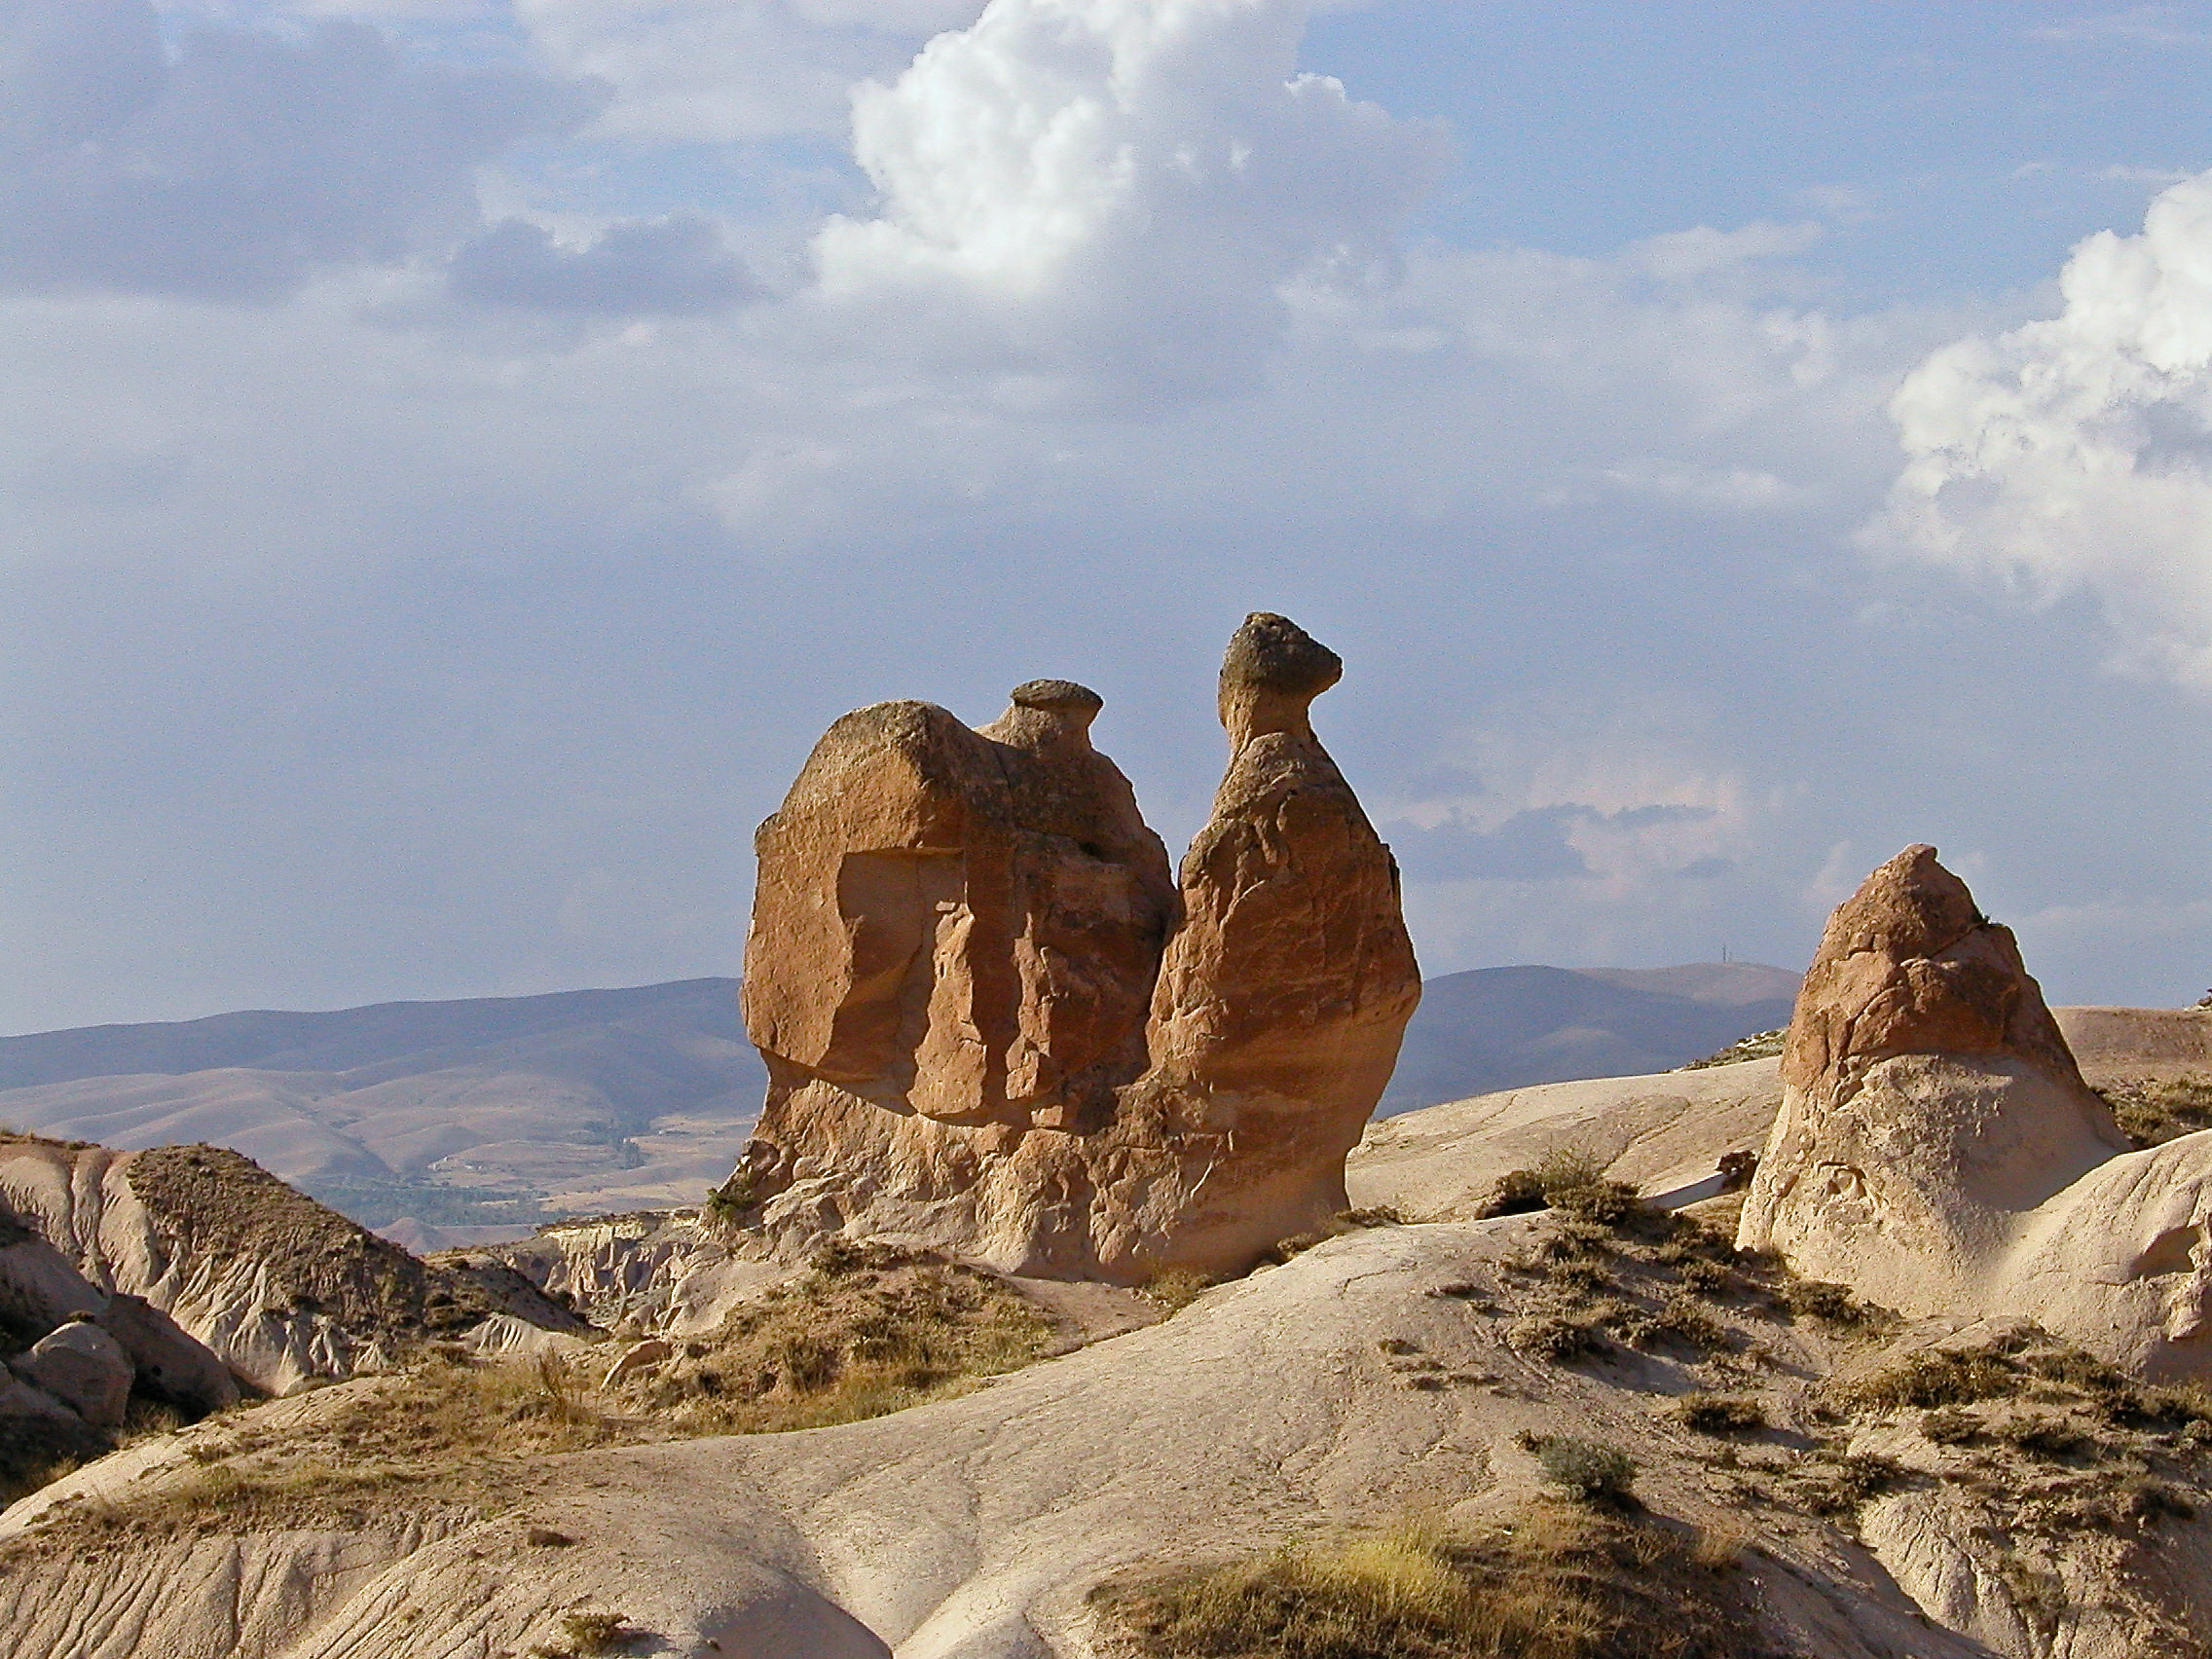 Formation from soft volcanic rock in Cappadocia - it's supposed to look like a camel but kind of looks like a snail too